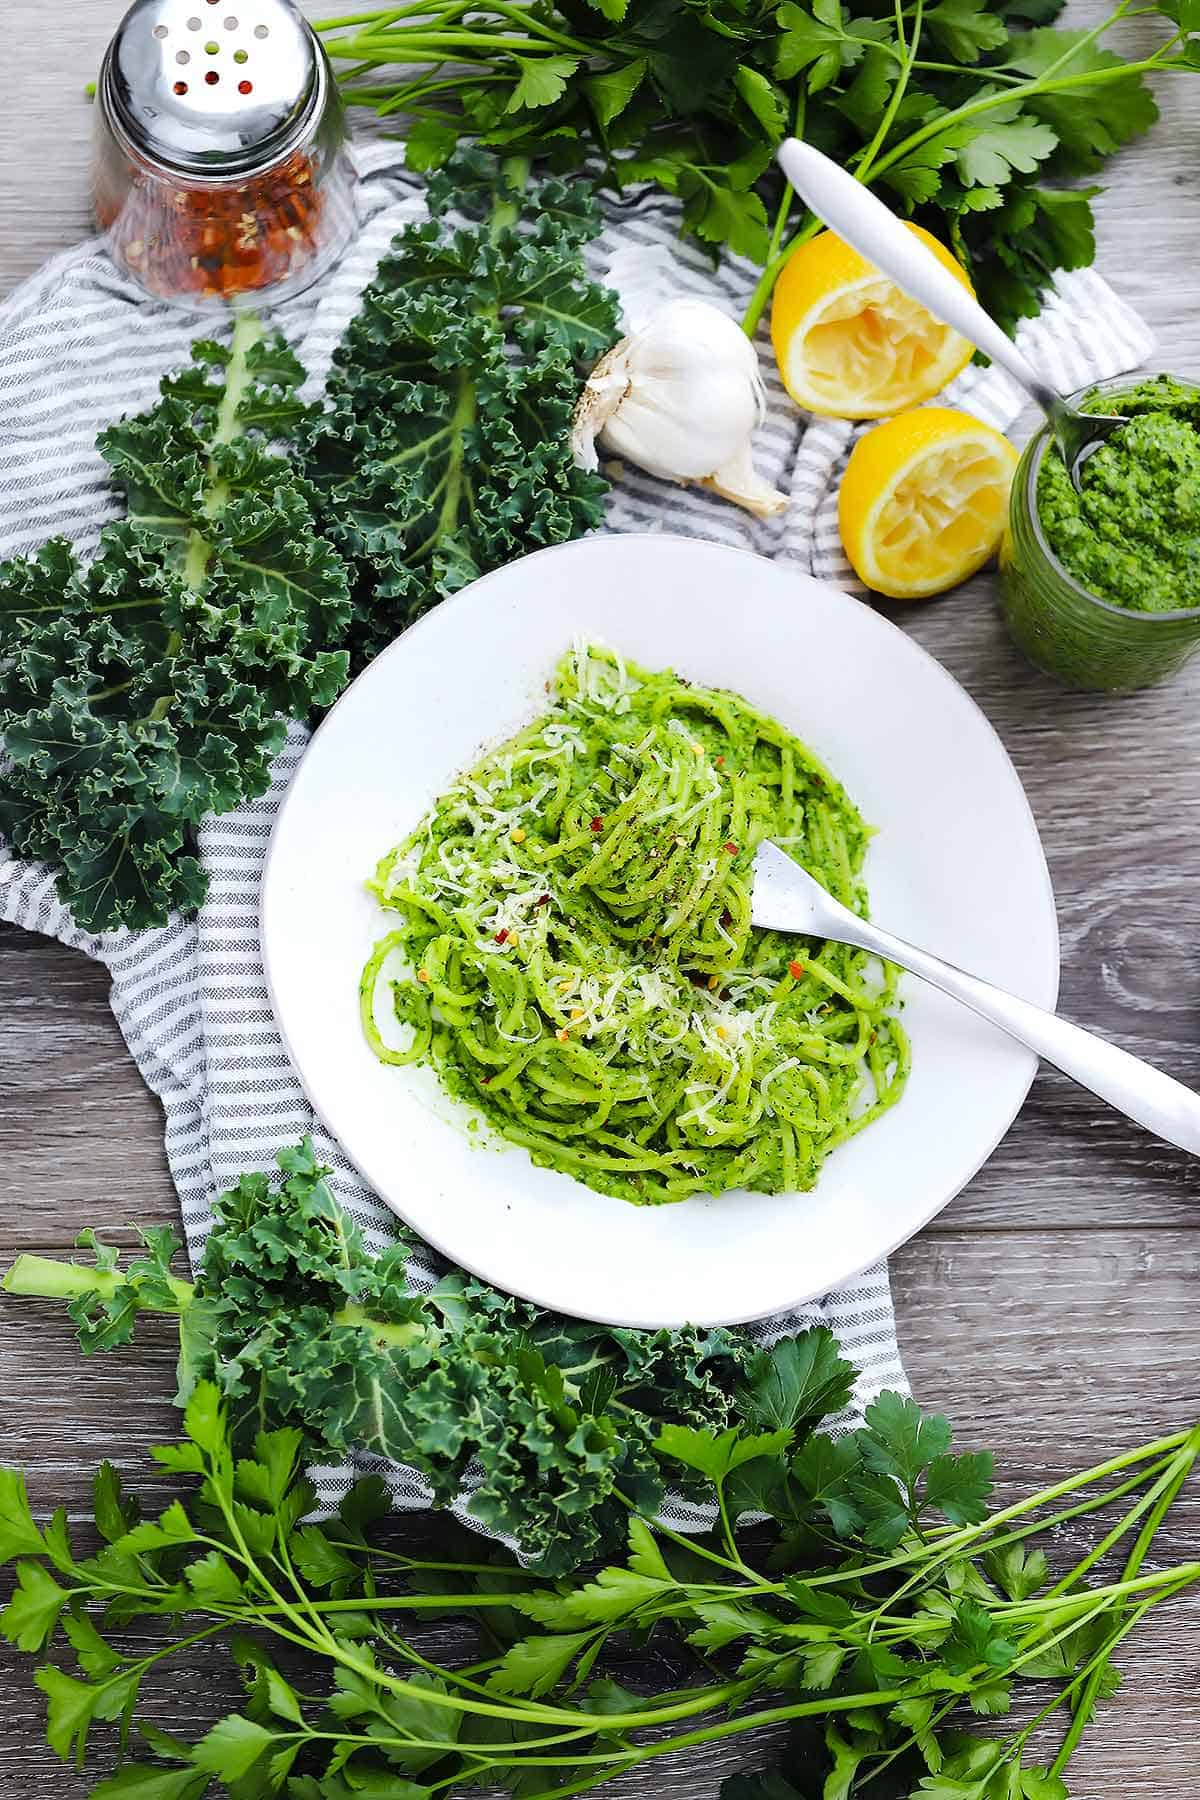 Flatlay image of spaghetti with kale pesto being twirled by a fork with kale, lemons, parsley, and red pepper in the background.